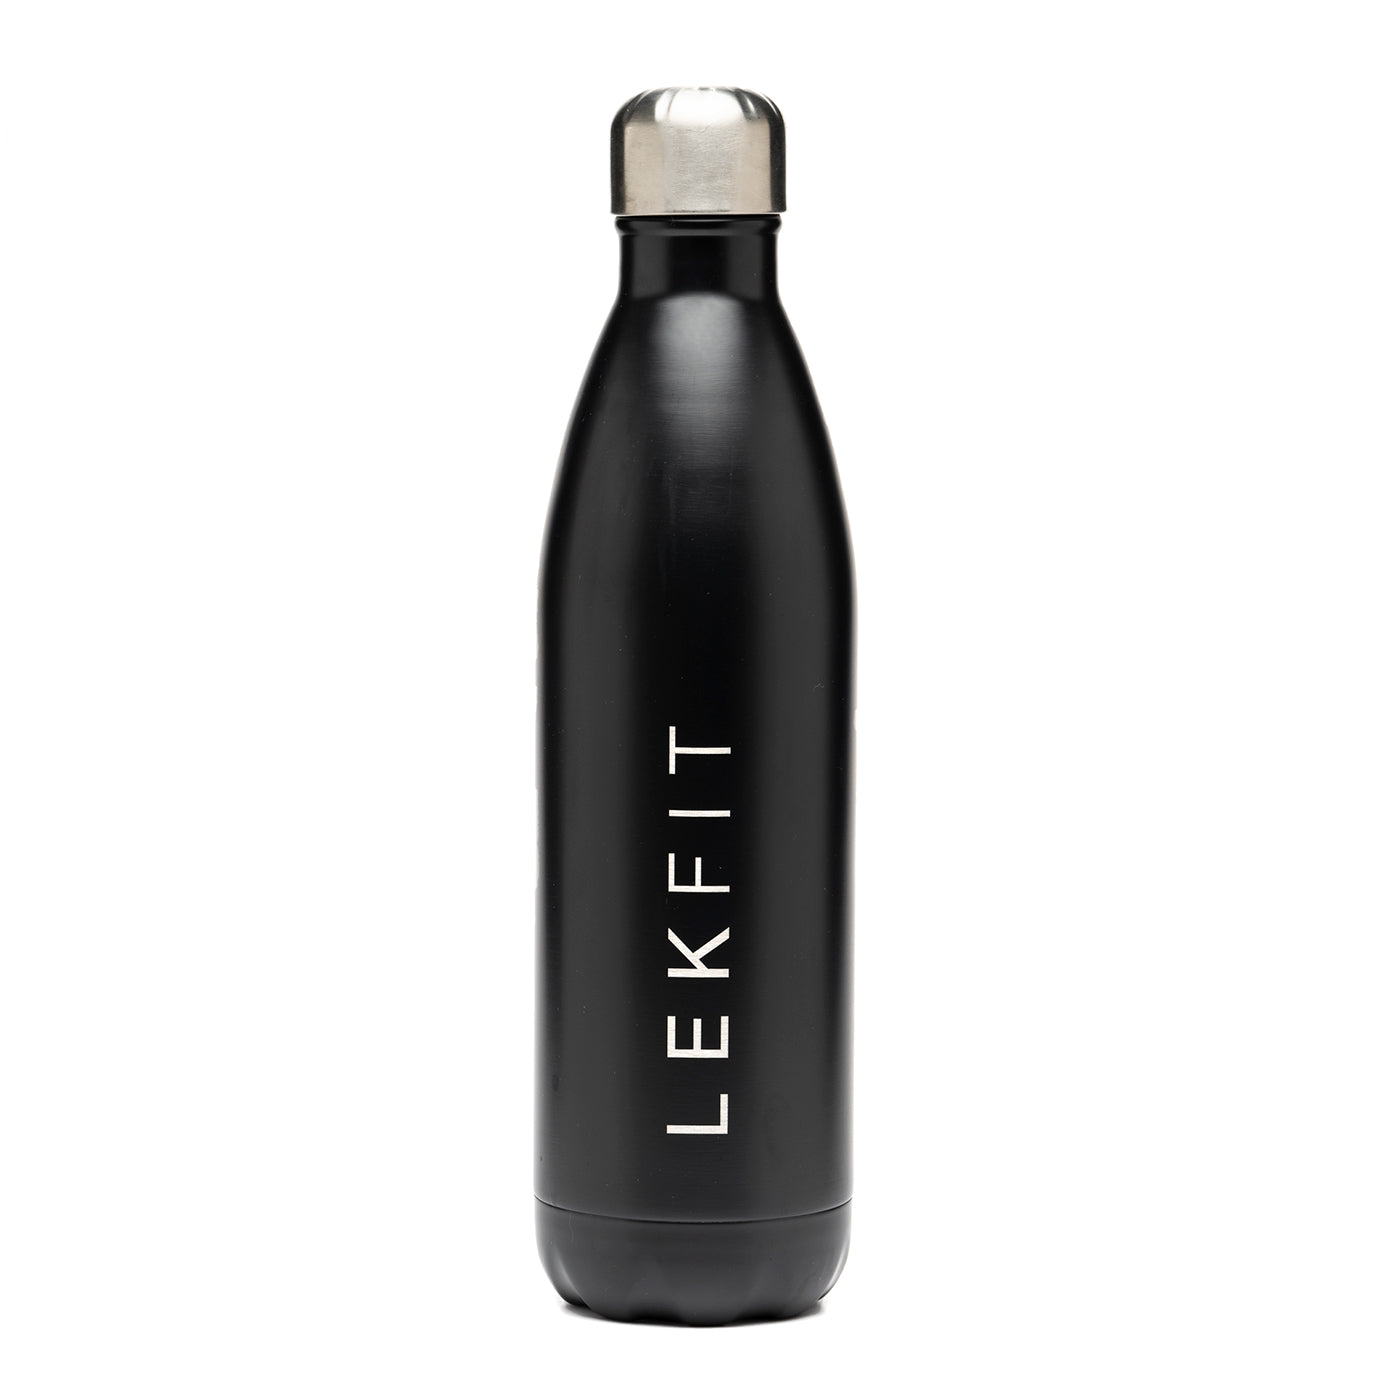 LEKFIT x S'well Reusable Bottle (25 oz)